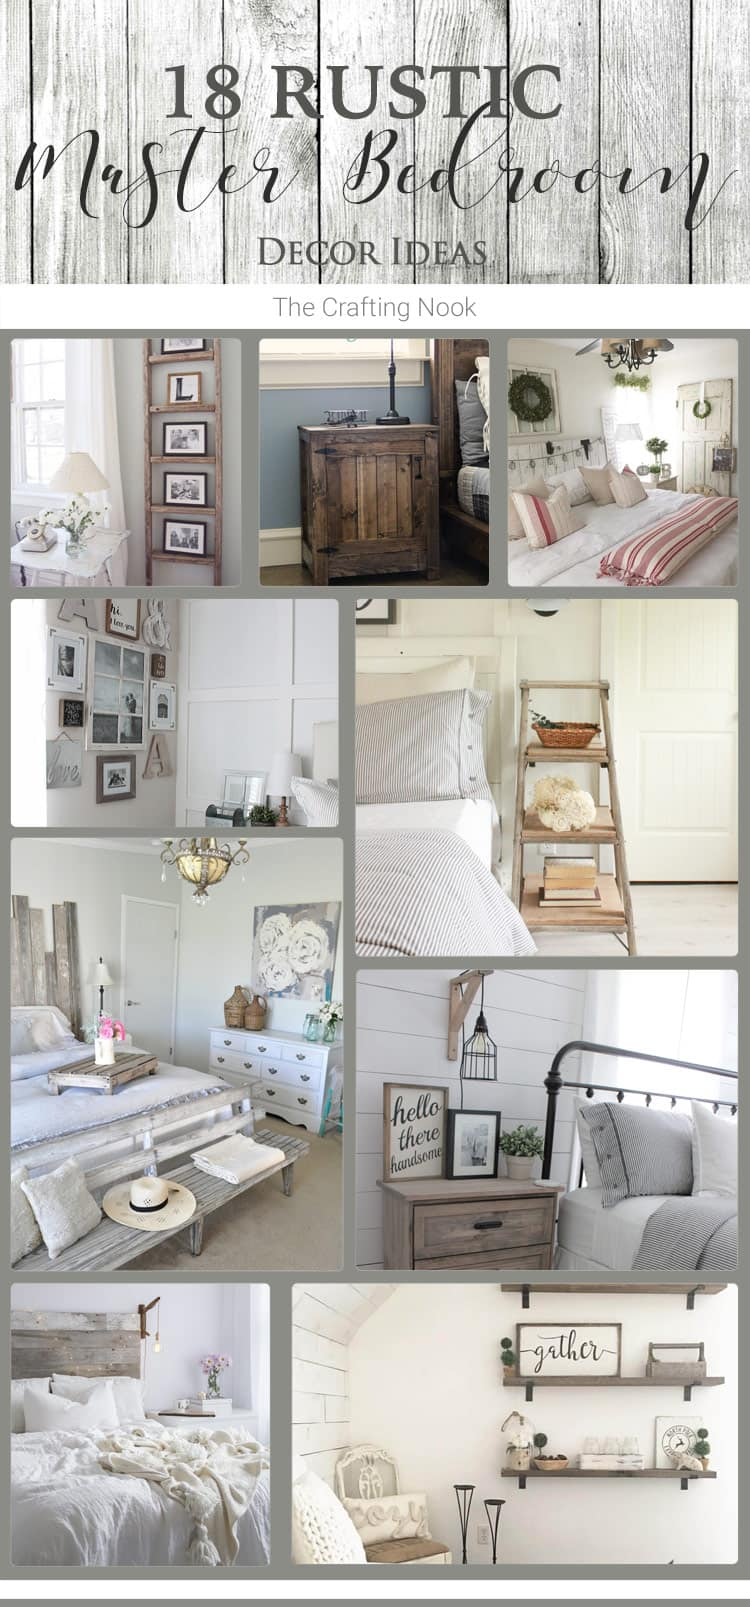 9 Rustic Master Bedroom Decor Ideas (that will invite you in